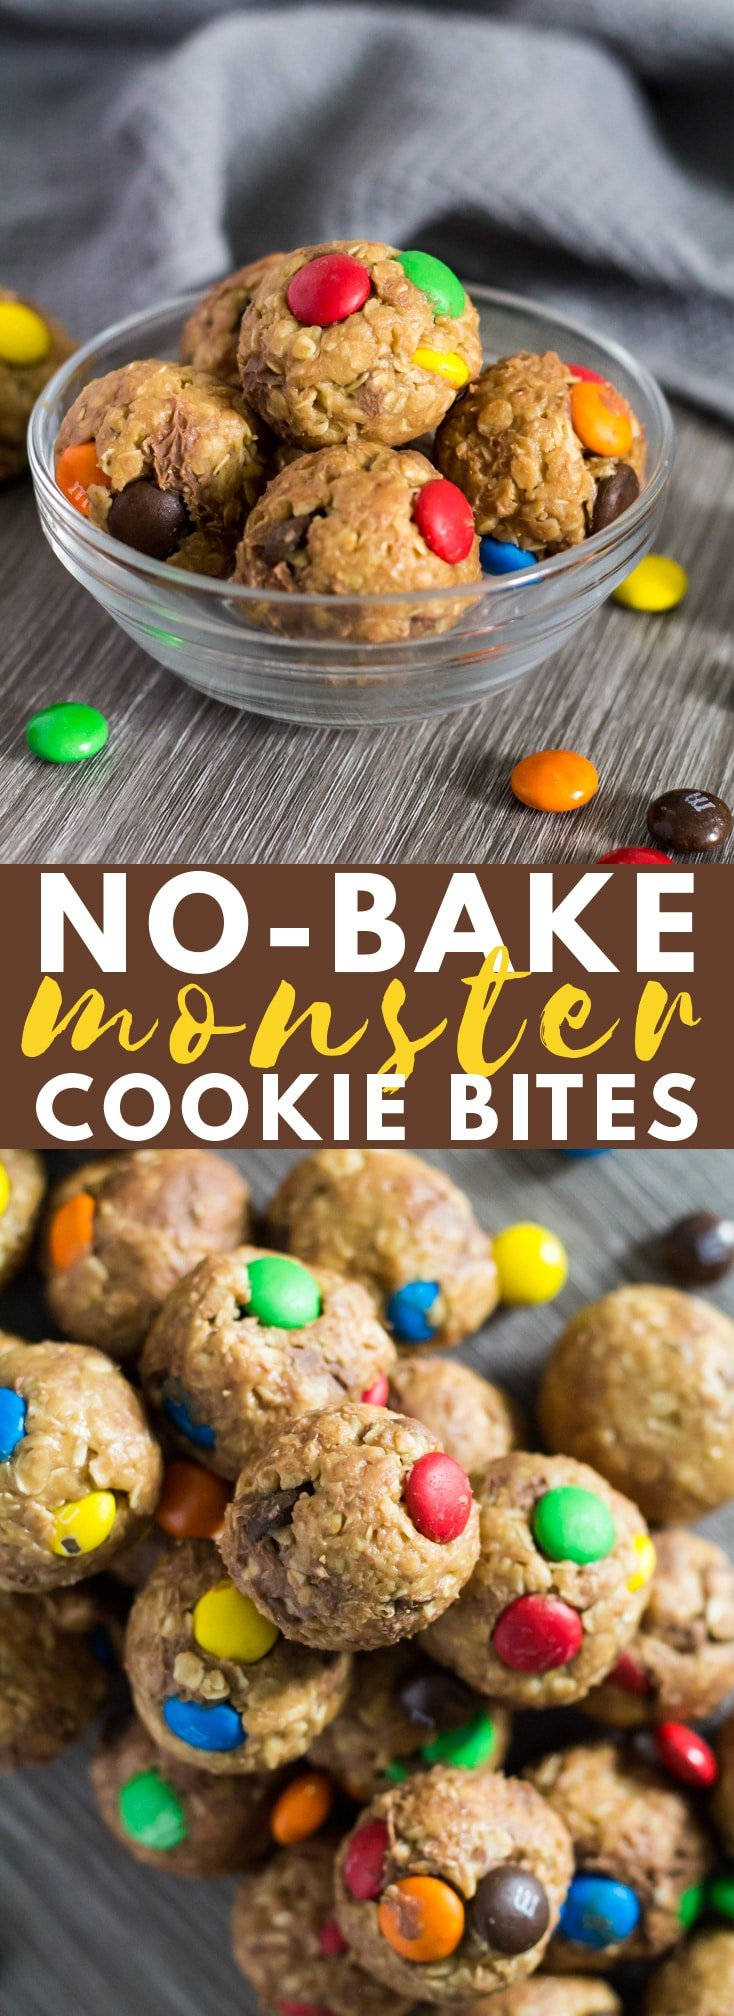 No-Bake Monster Cookie Bites - Deliciously chewy no-bake peanut butter balls that are loaded with oats, chocolate chips, and M&M's!